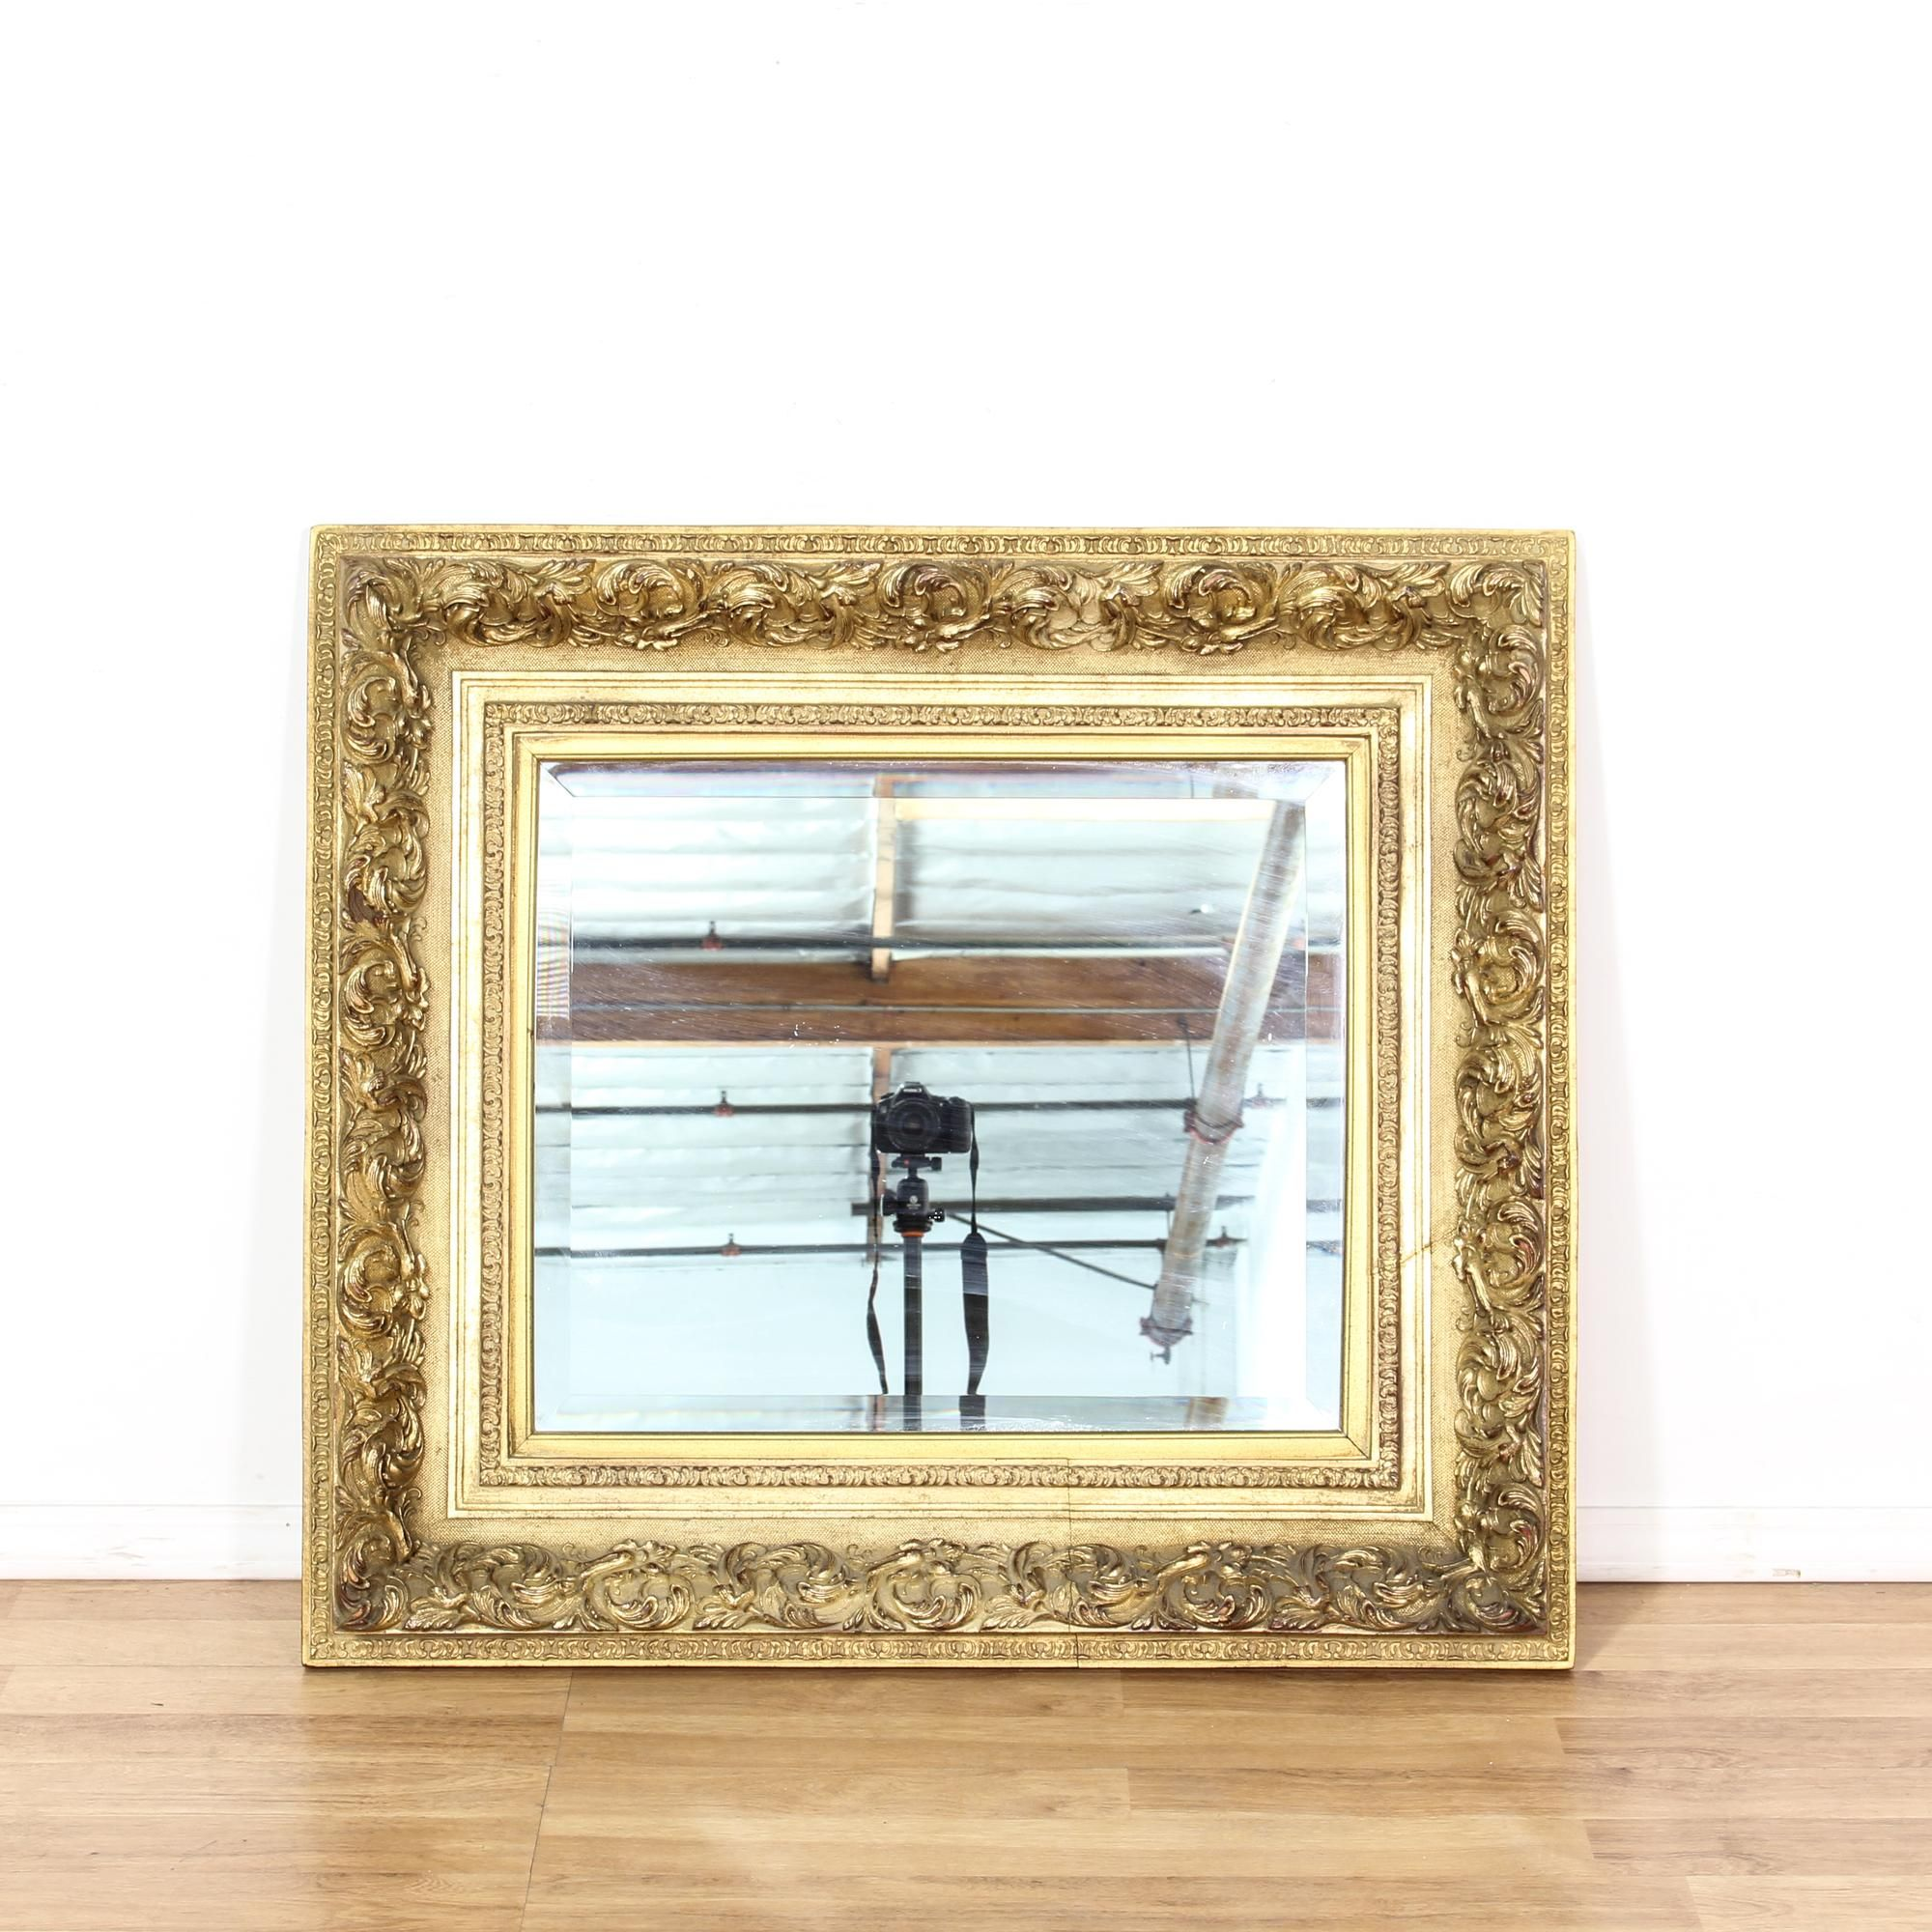 This ornate mirror is featured in a metal with a shiny antique gold ...